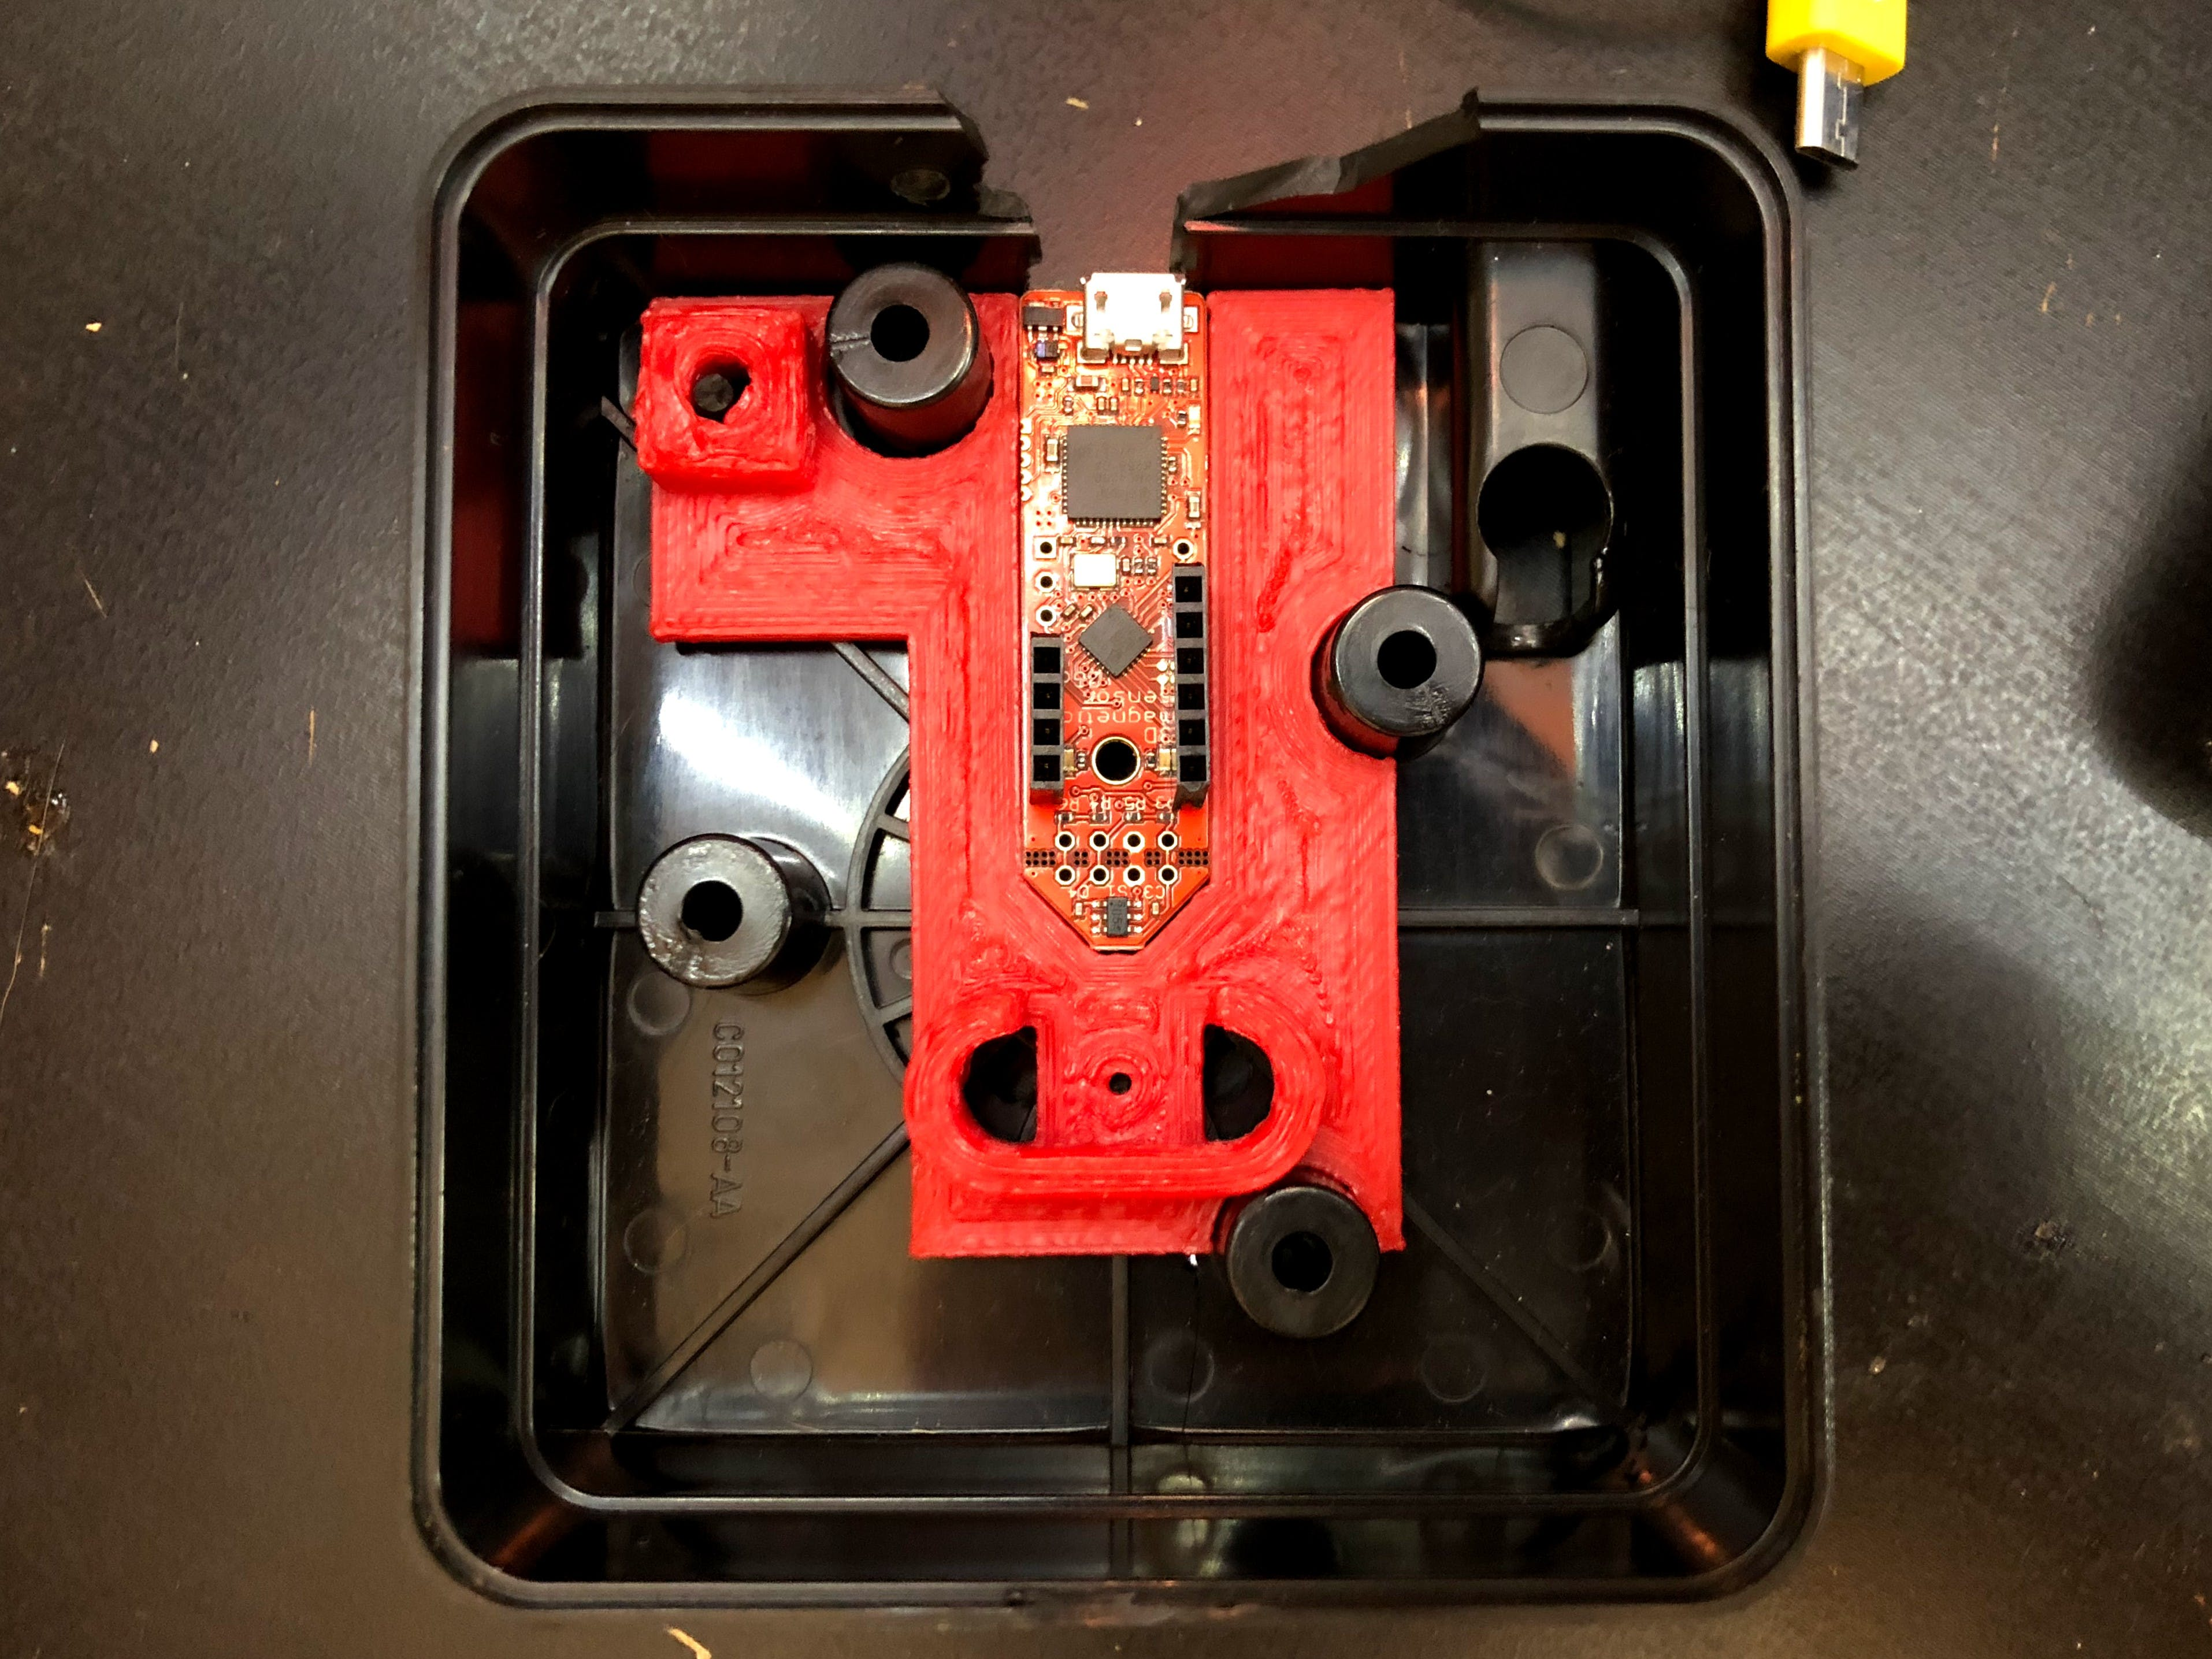 3D-printed adapter to hold the evaluation board